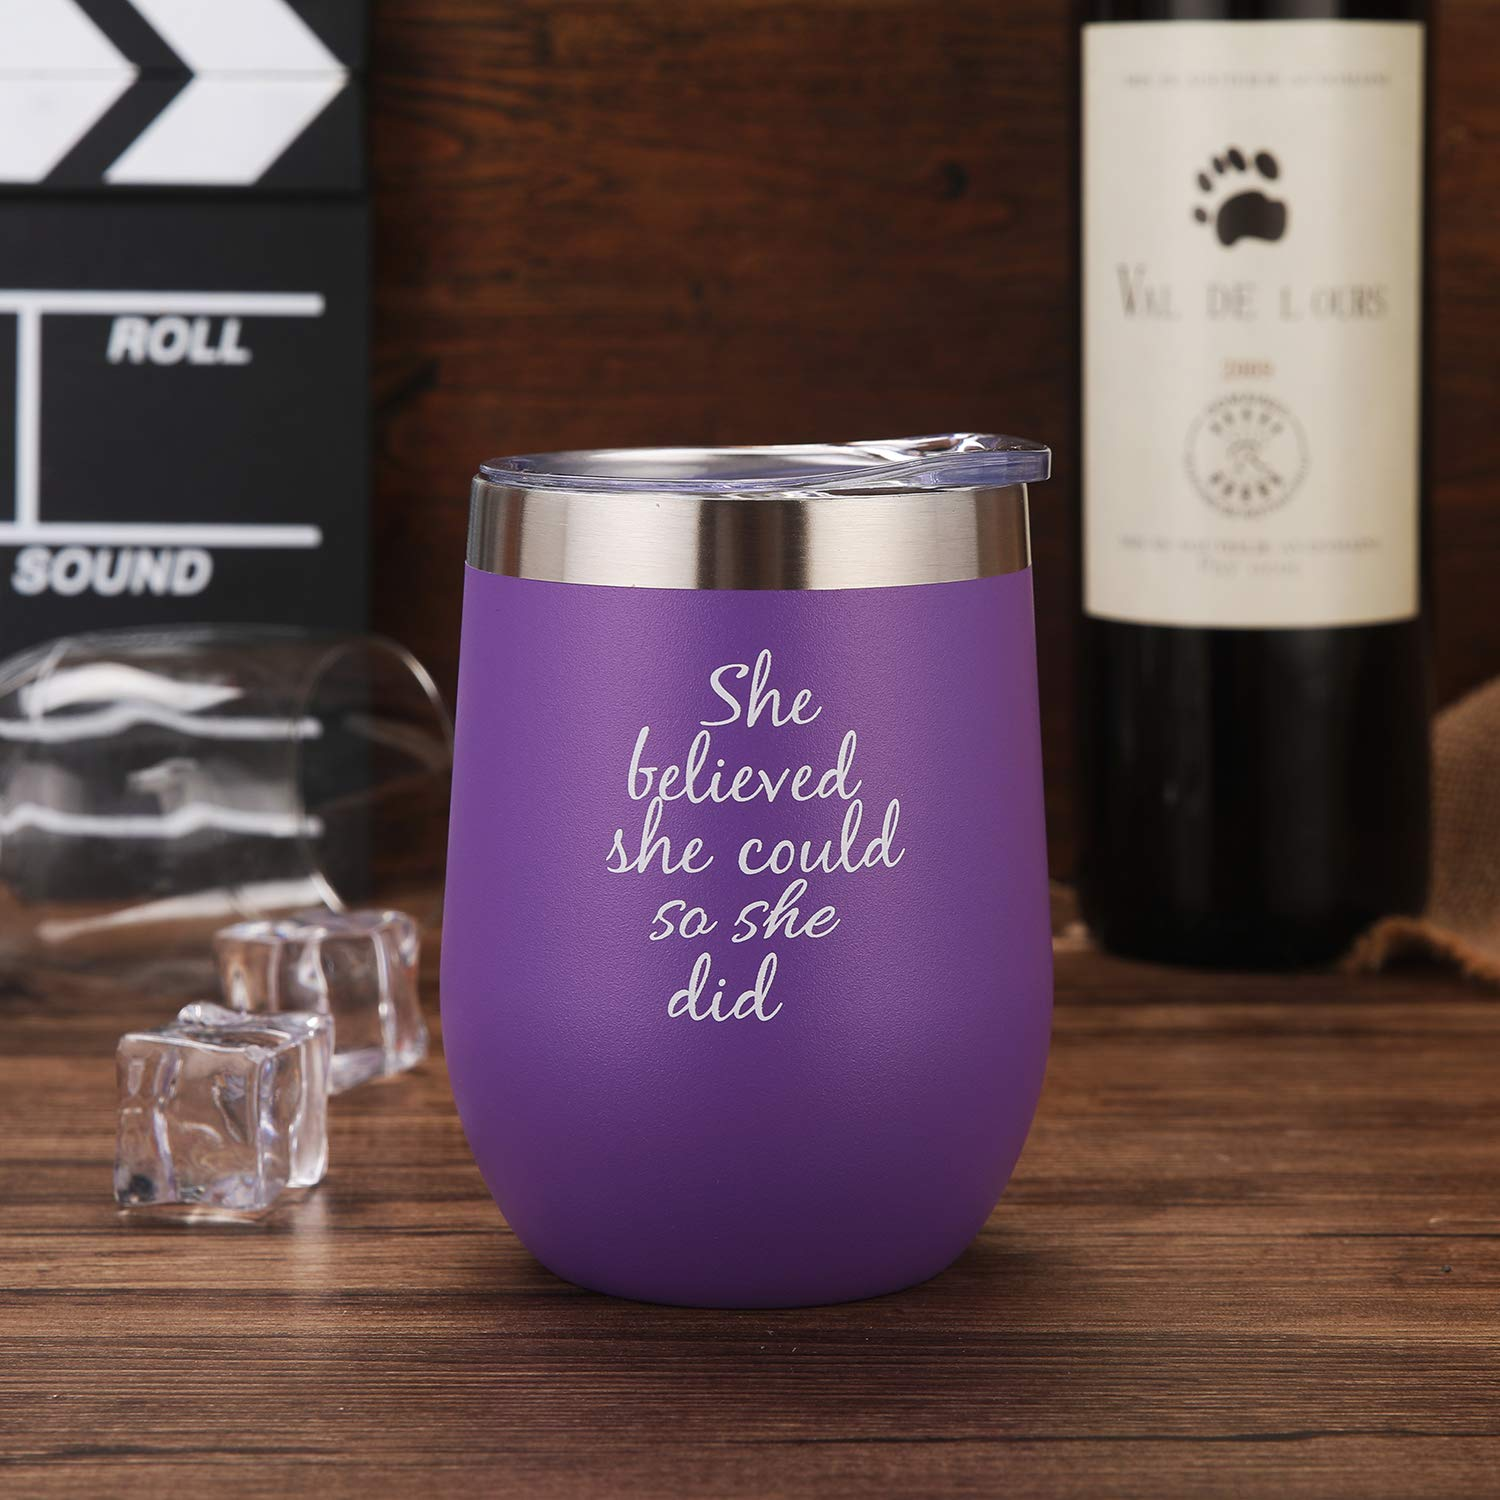 Graduation Gifts for Her,Going Away,Job Change,Congrats,Birthday Gift 12 oz Black She Believed She Could So She Did Wine Tumbler Mug,Spiritual Inspiritional Gifts for Women,Congratulations